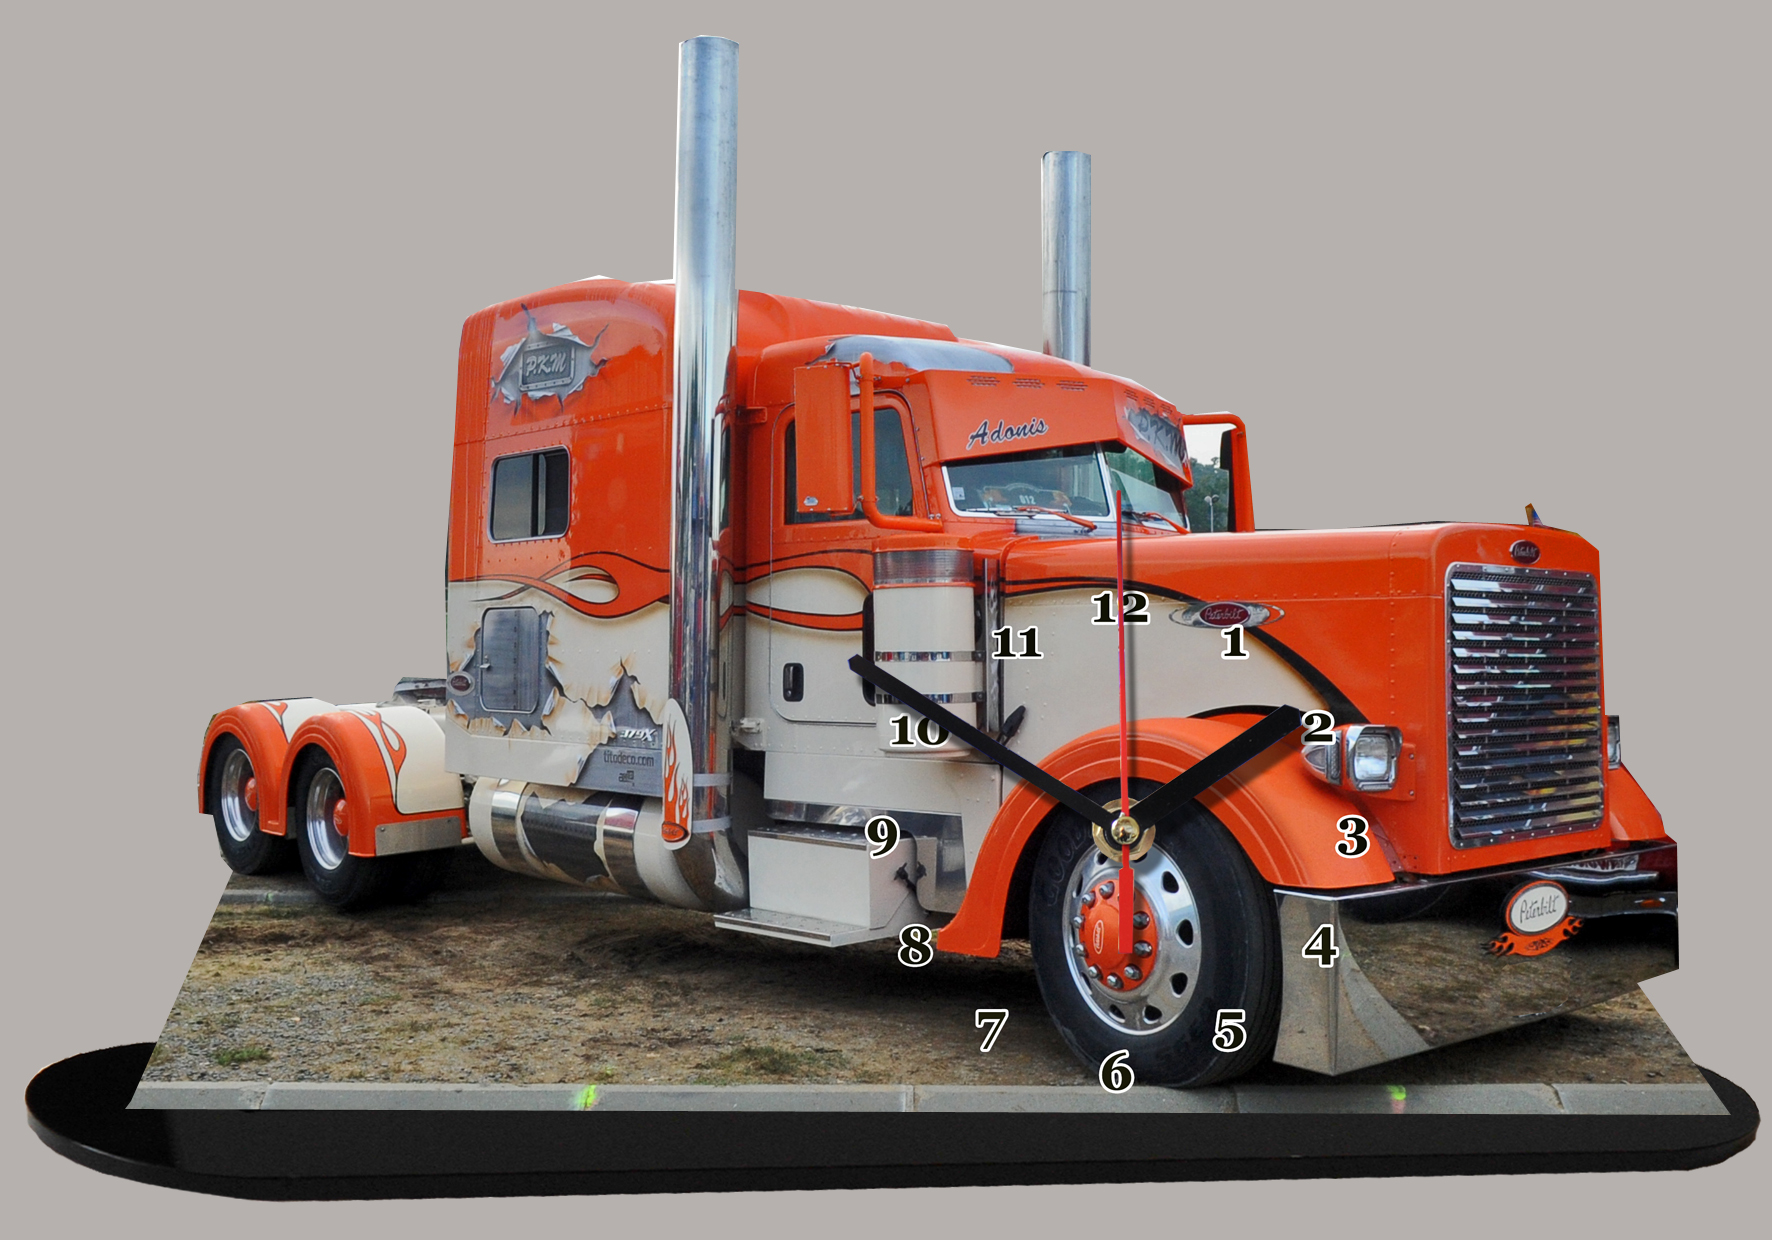 big rig remote control trucks with Miniature Peterbilt on Jac Hfc1061k 26114 moreover Tesla Semi Truck Return Investment Roi as well Top 10 Best Rc Semi Trucks further Led lighting projects together with Custom Built 18 Wheelers Hot Rodcustom Big Rigs.